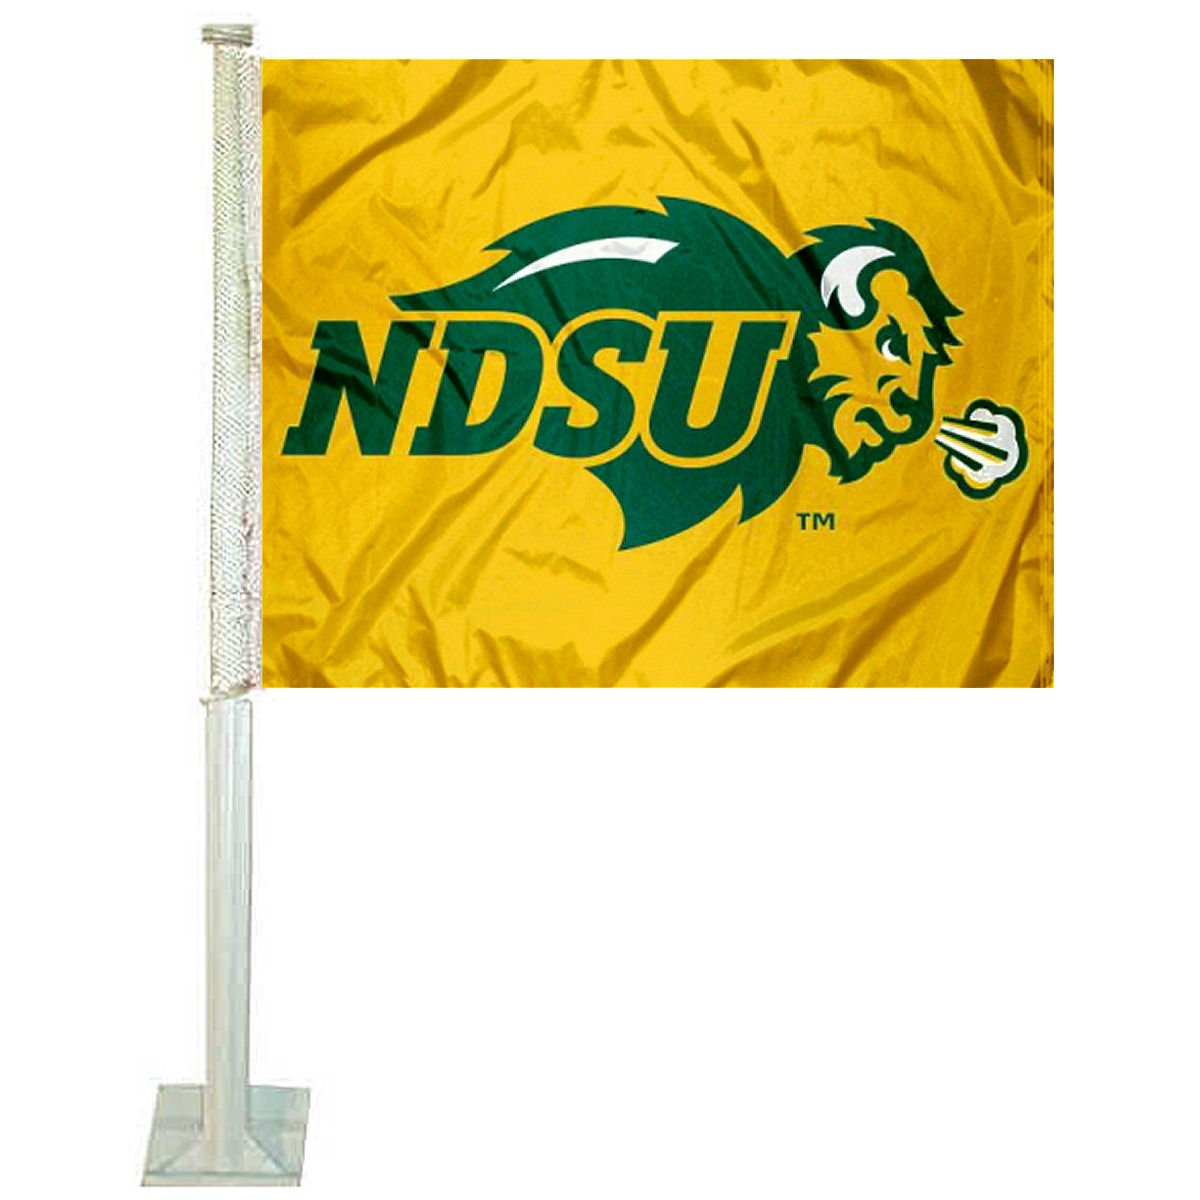 North Dakota State Bison Gold Car Flag College Flags and Banners Co.